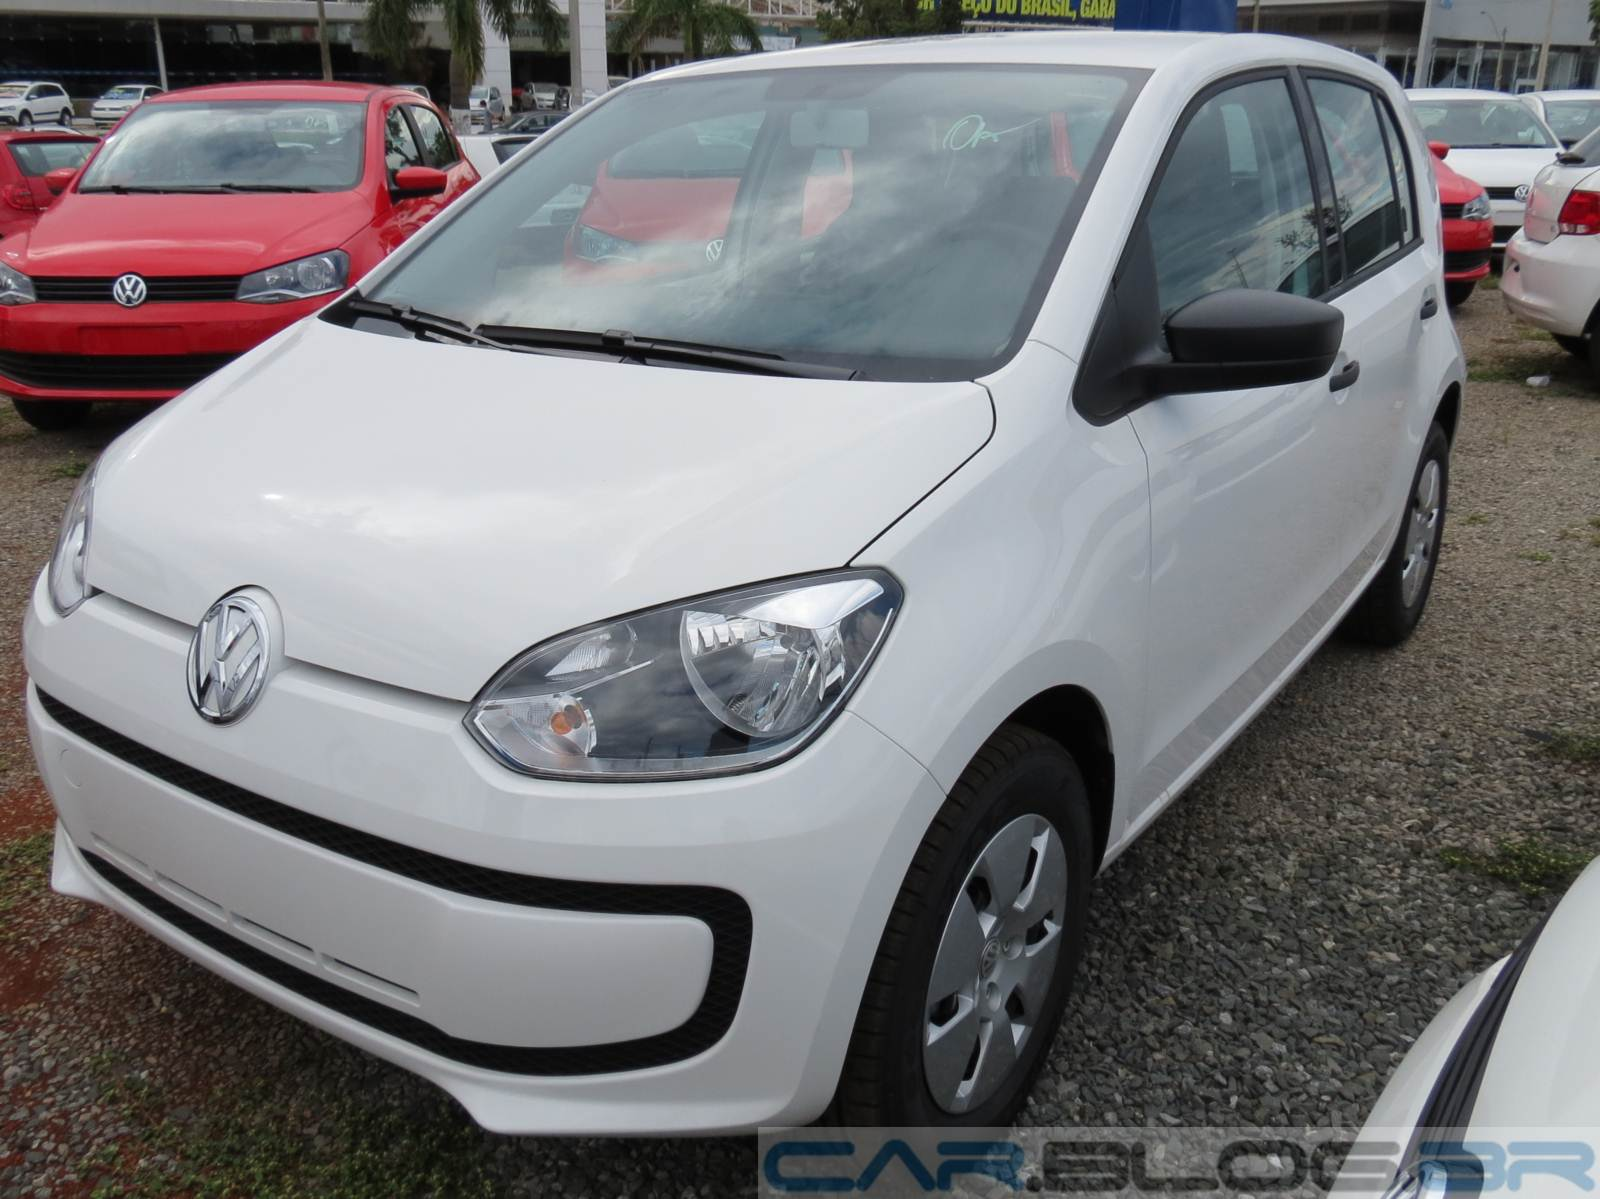 novo Volkswagen up!